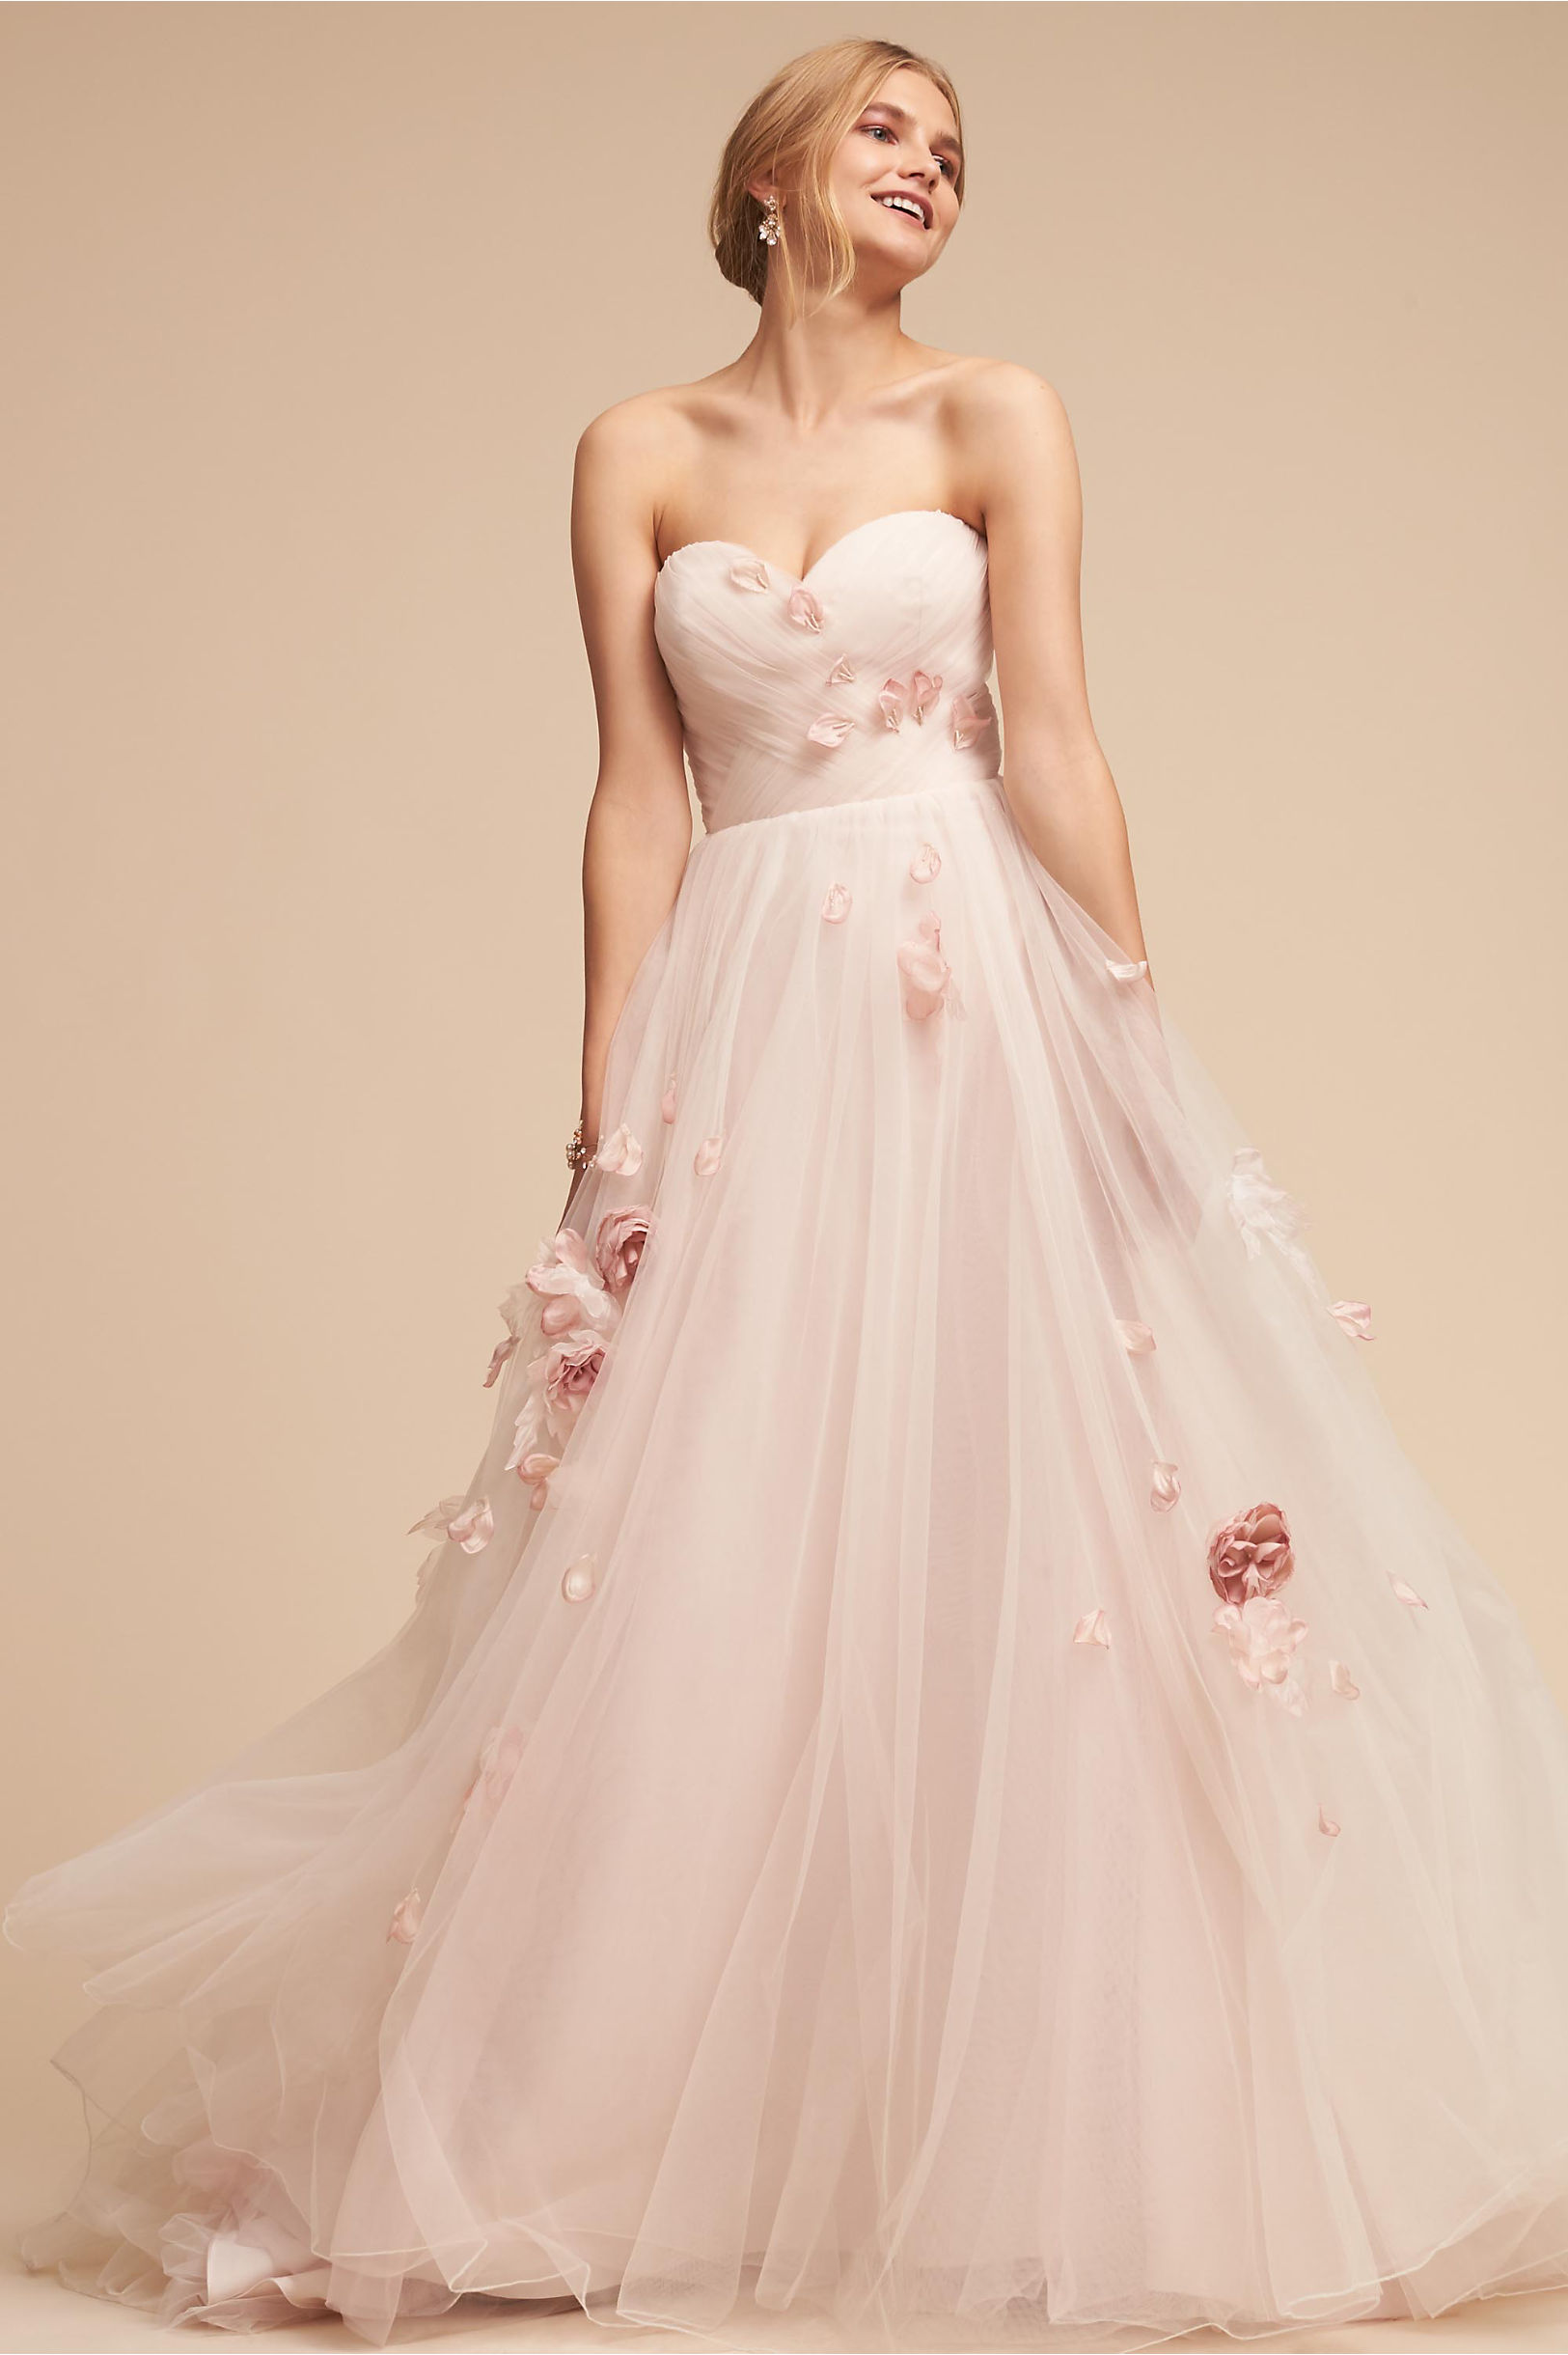 Eloise strapless pink ball gown tulle flower details whispers and echoes bhldn spring 2018